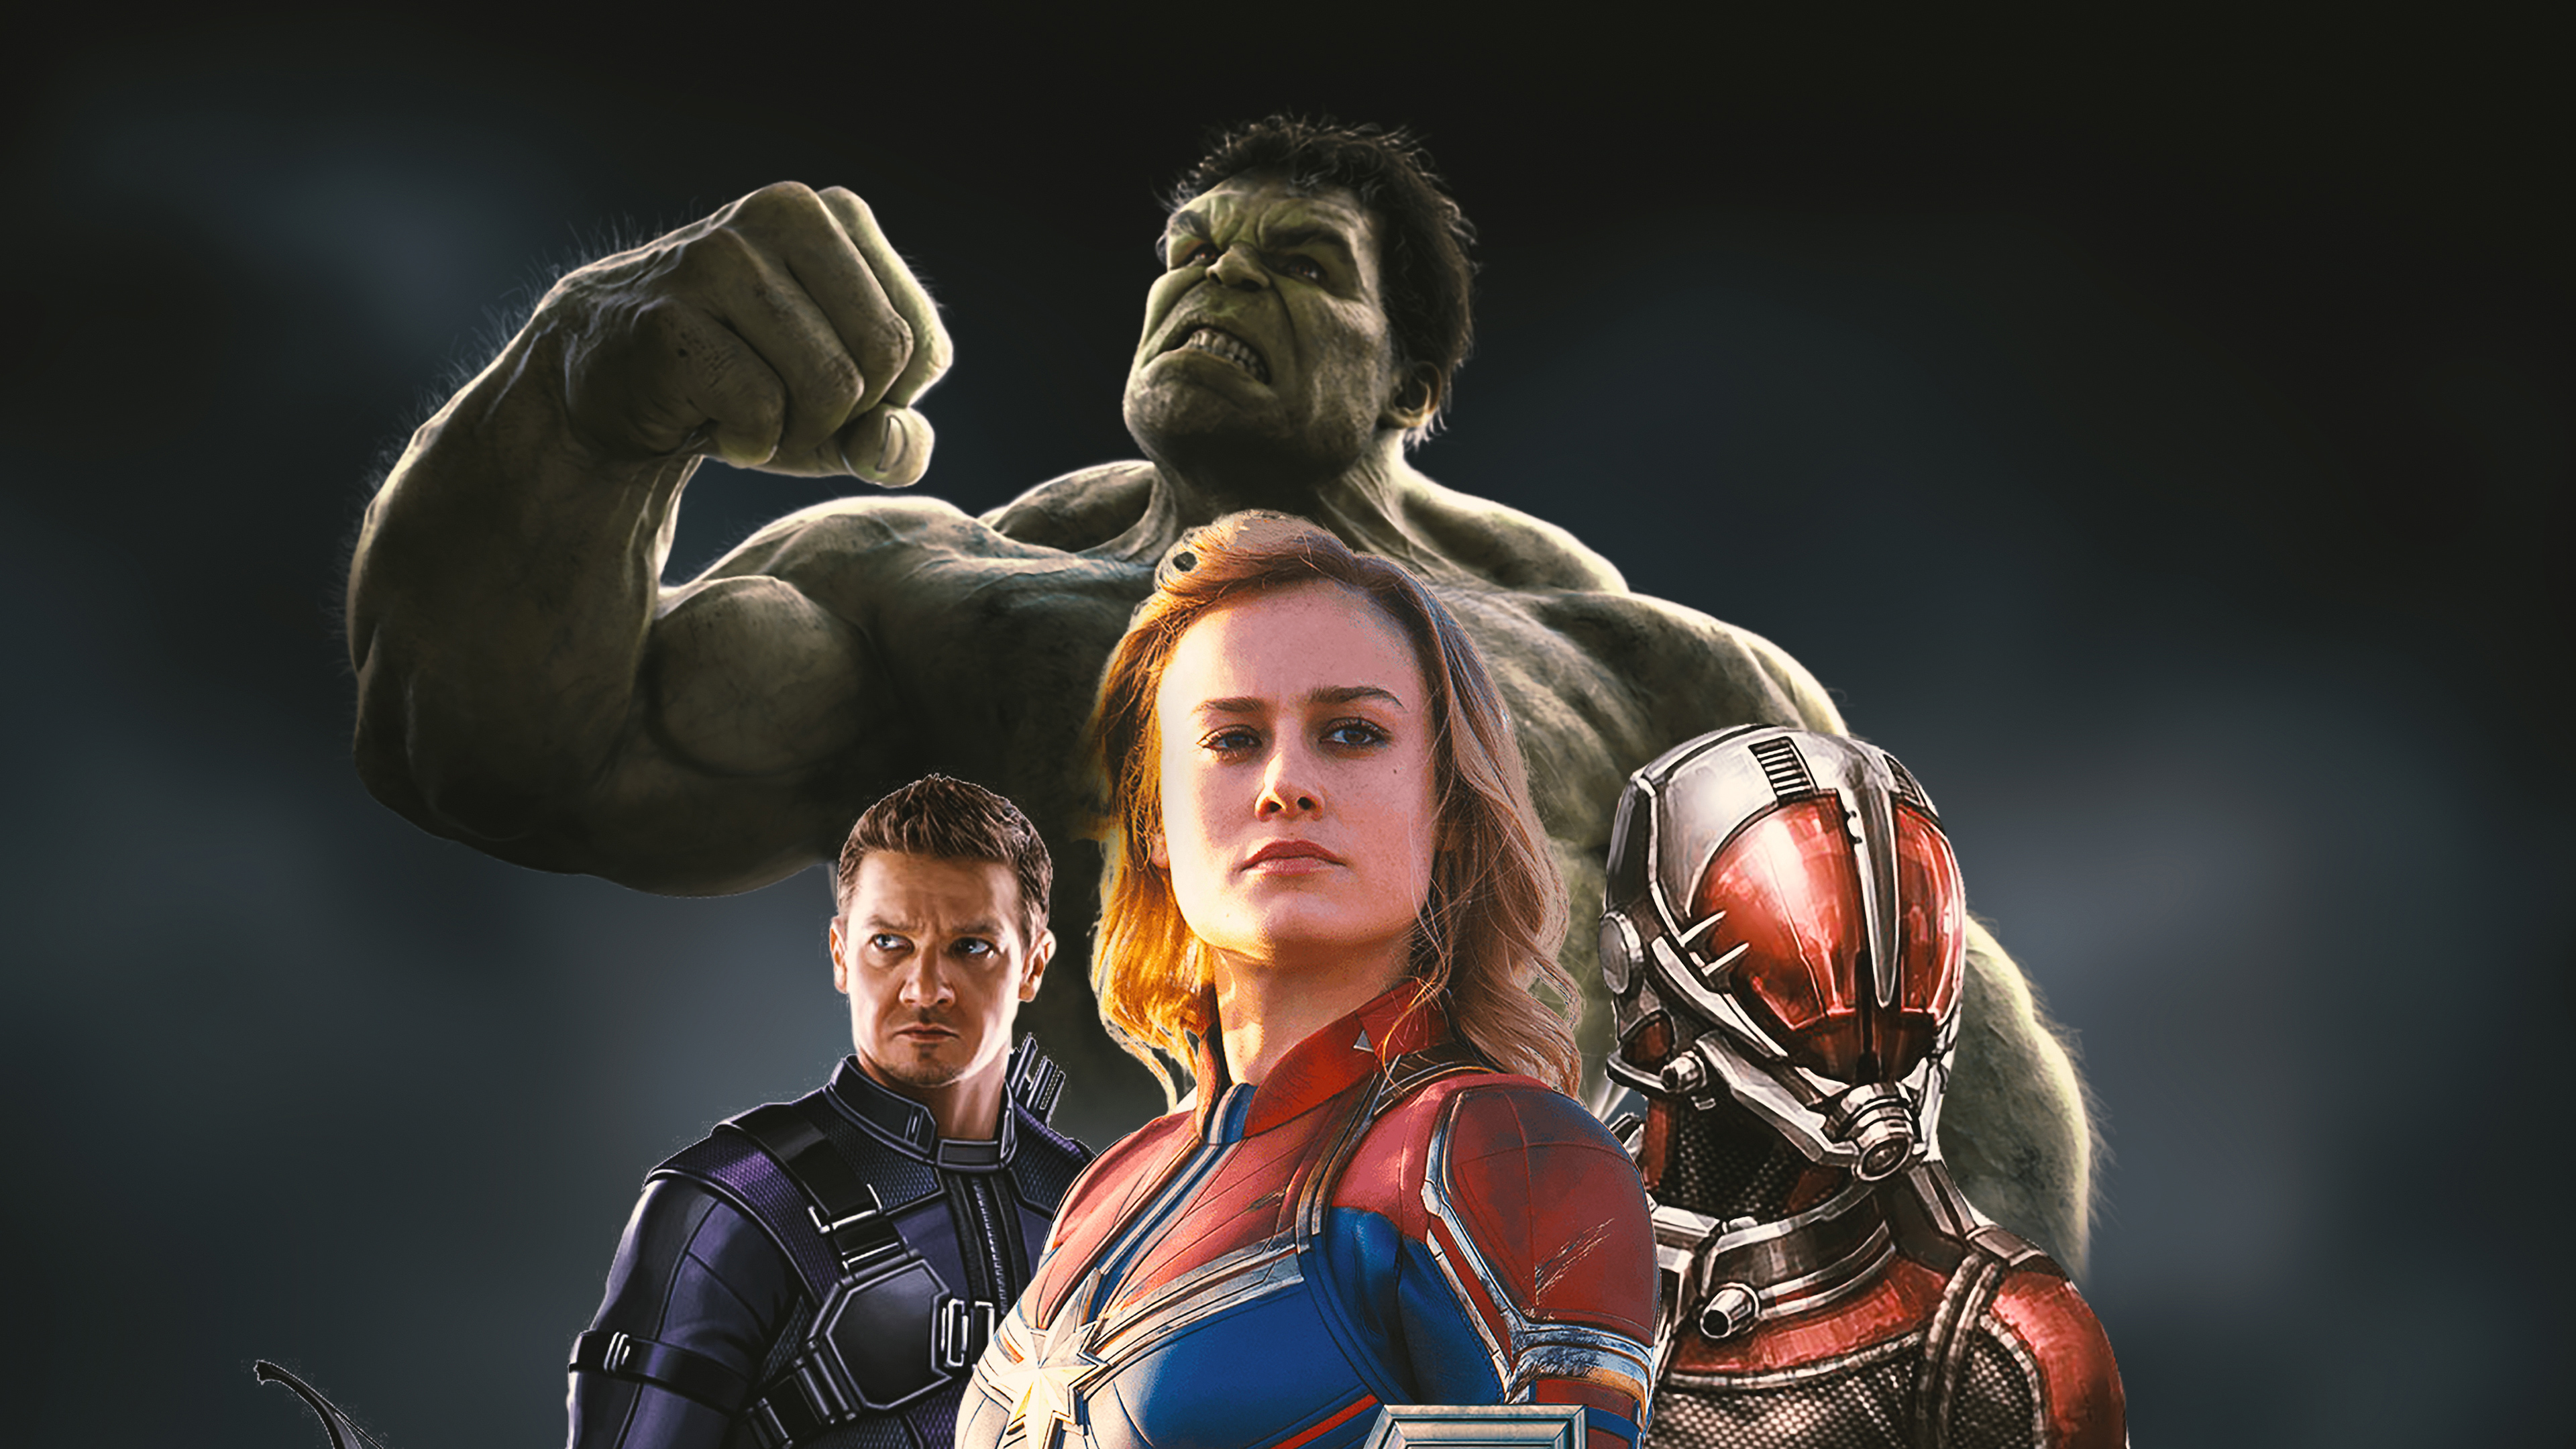 avengers endgame heroes 4k 1556184870 - Avengers Endgame Heroes 4k - movies wallpapers, hulk wallpapers, hd-wallpapers, hawkeye wallpapers, captain marvel wallpapers, avengers endgame wallpapers, ant man wallpapers, 2019 movies wallpapers